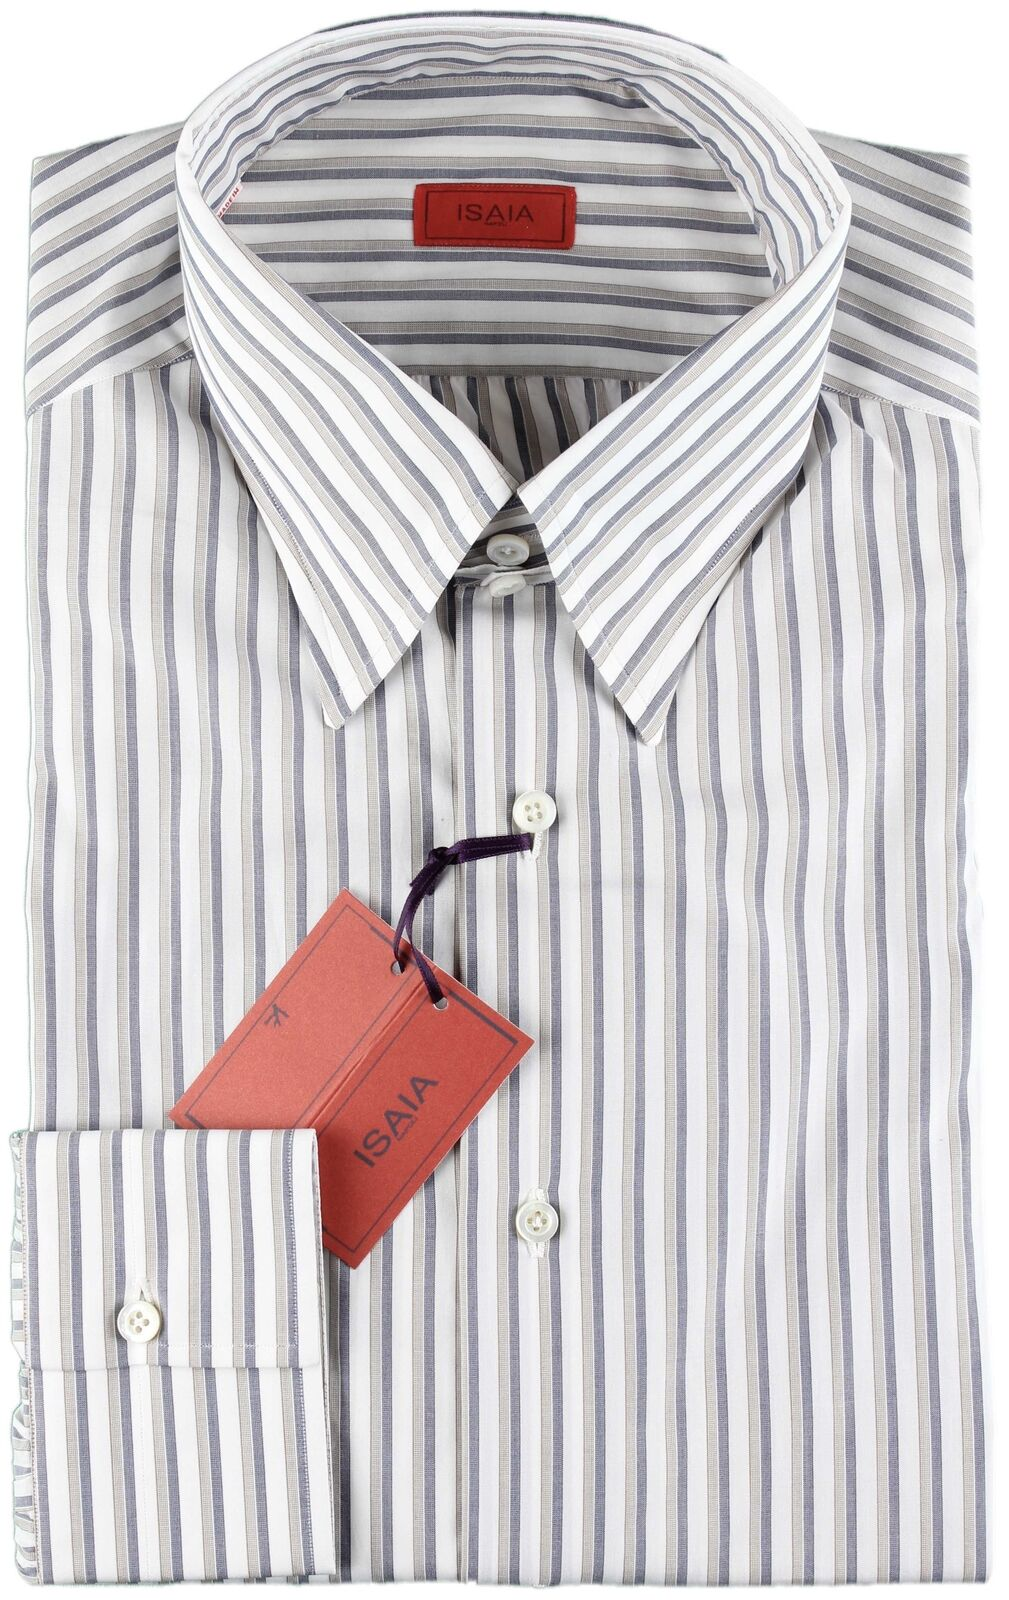 NWT ISAIA SHIRT white, bluee & grey striped luxury handmade  40 15 3 4